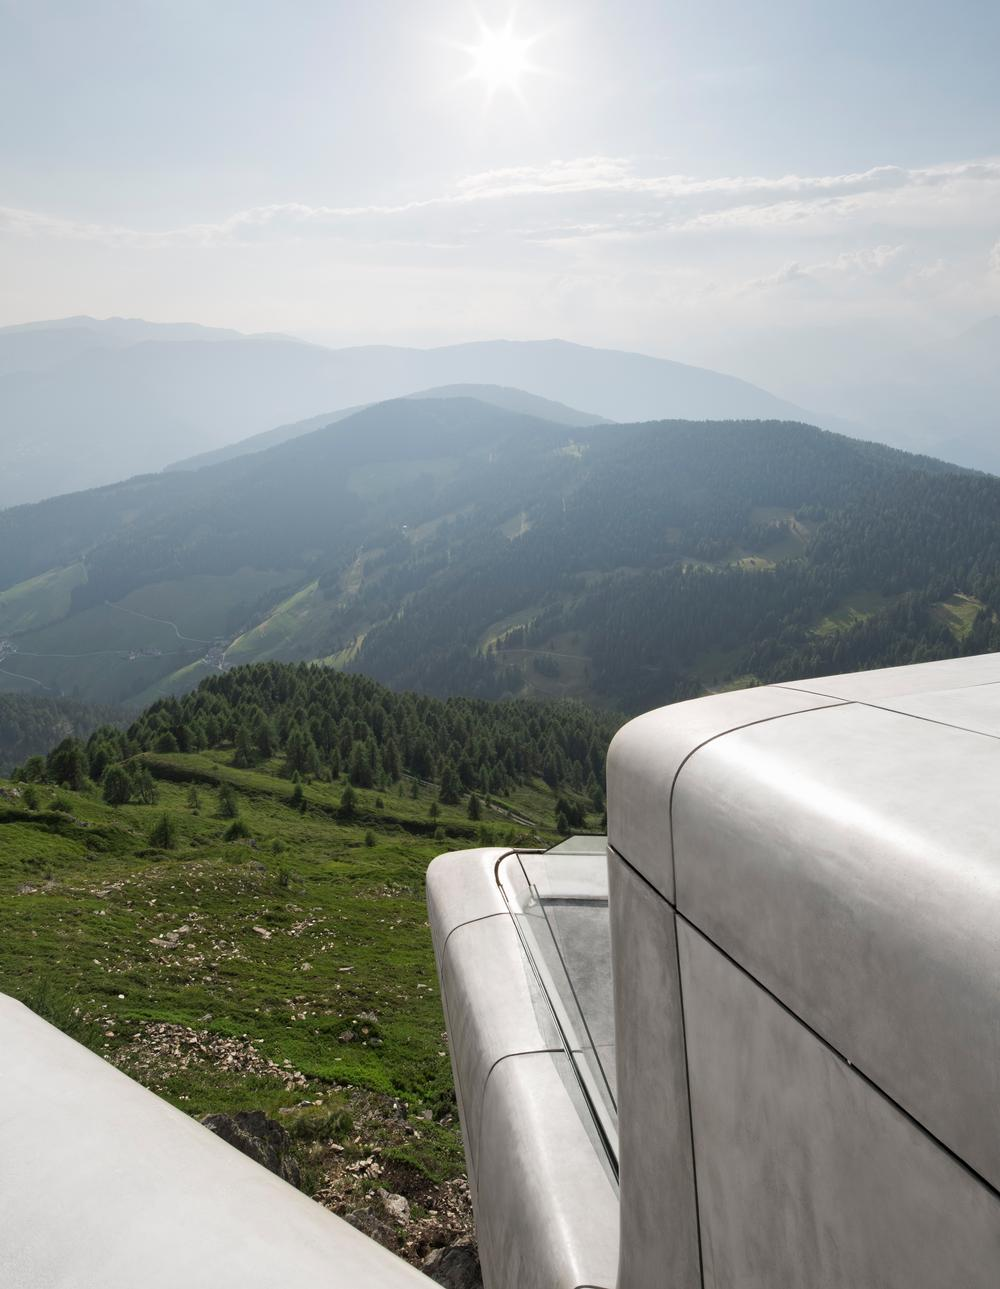 The exterior concrete panels were inspired by the surrounding rock and ice formations / PHOTO: Werner Huthmacher